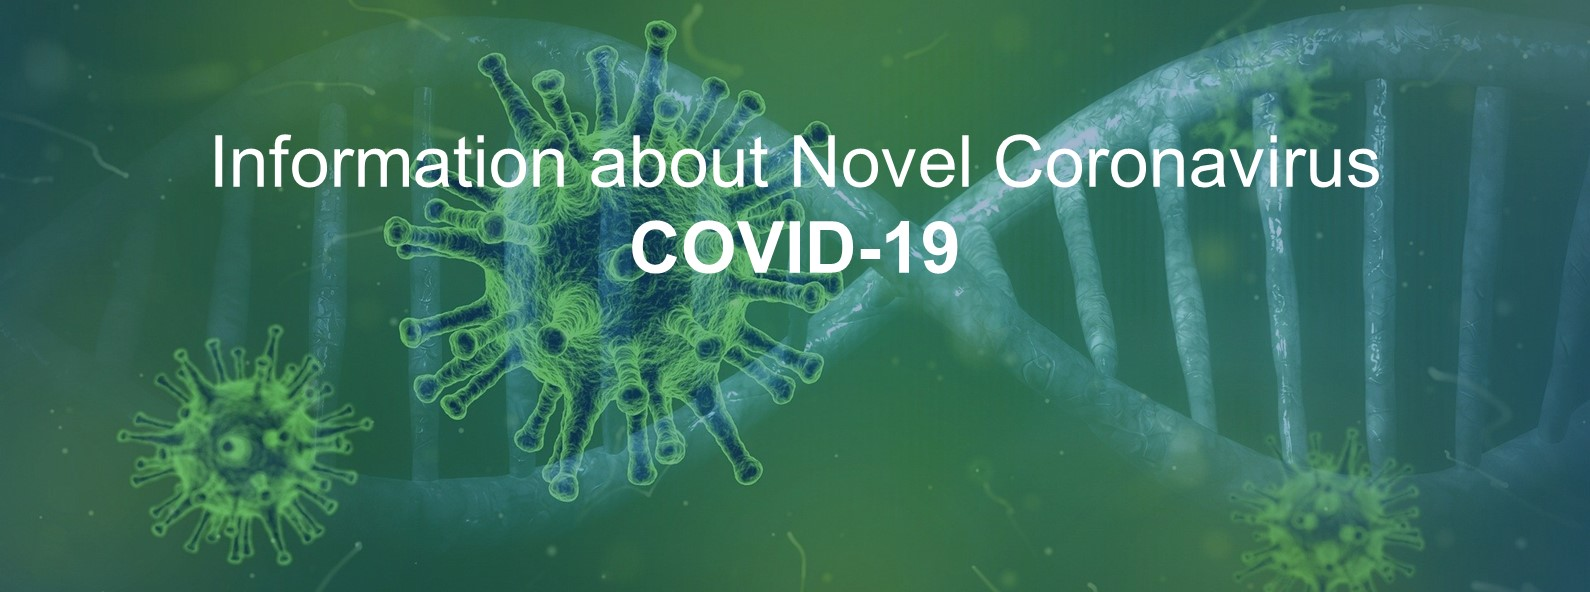 Information about Novel Coronavirus COVID-19